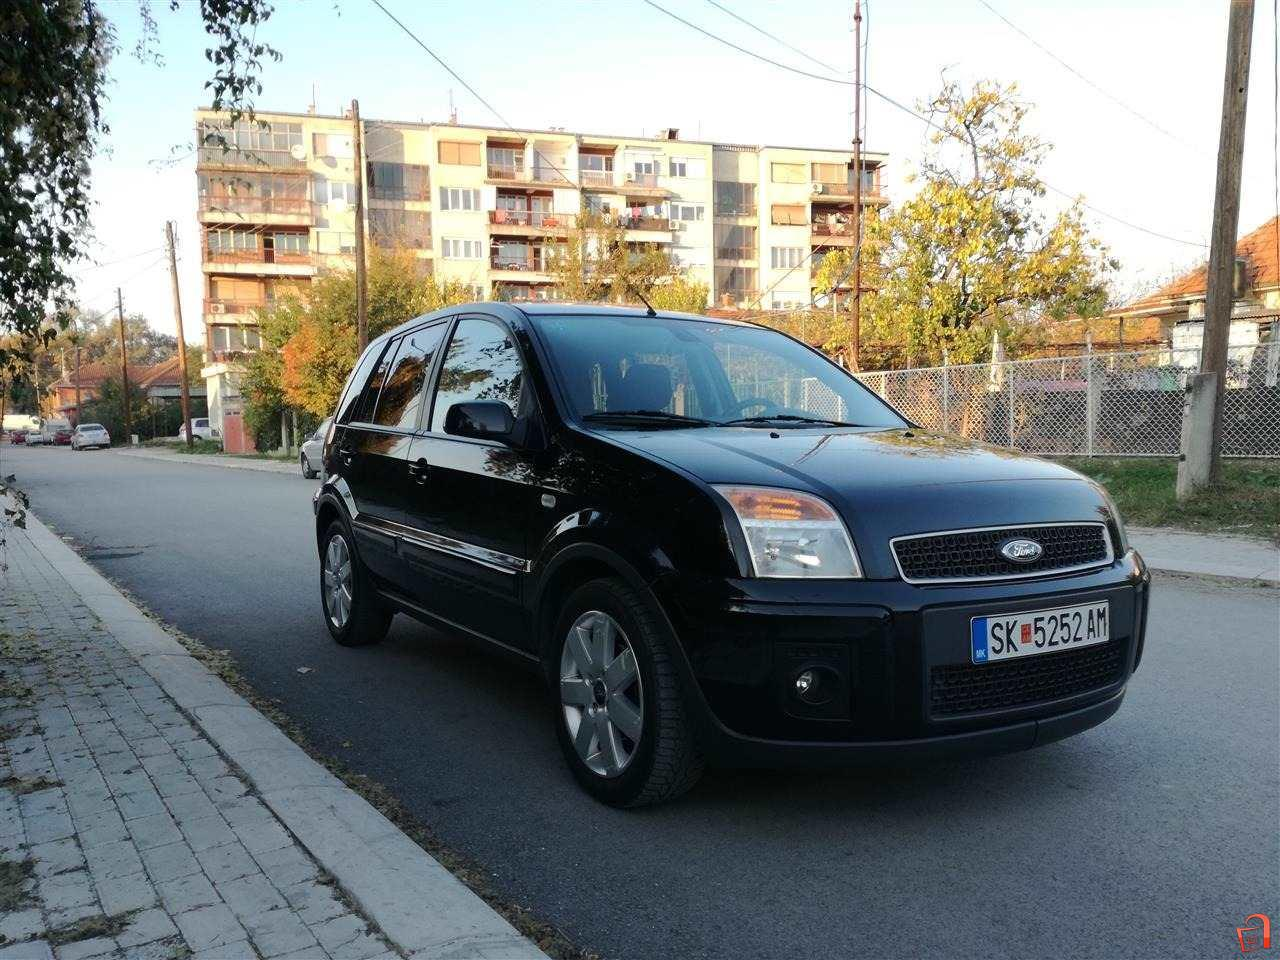 ad ford fusion cross 1 4 tdci for sale skopje gjorce petrov vehicles automobiles. Black Bedroom Furniture Sets. Home Design Ideas